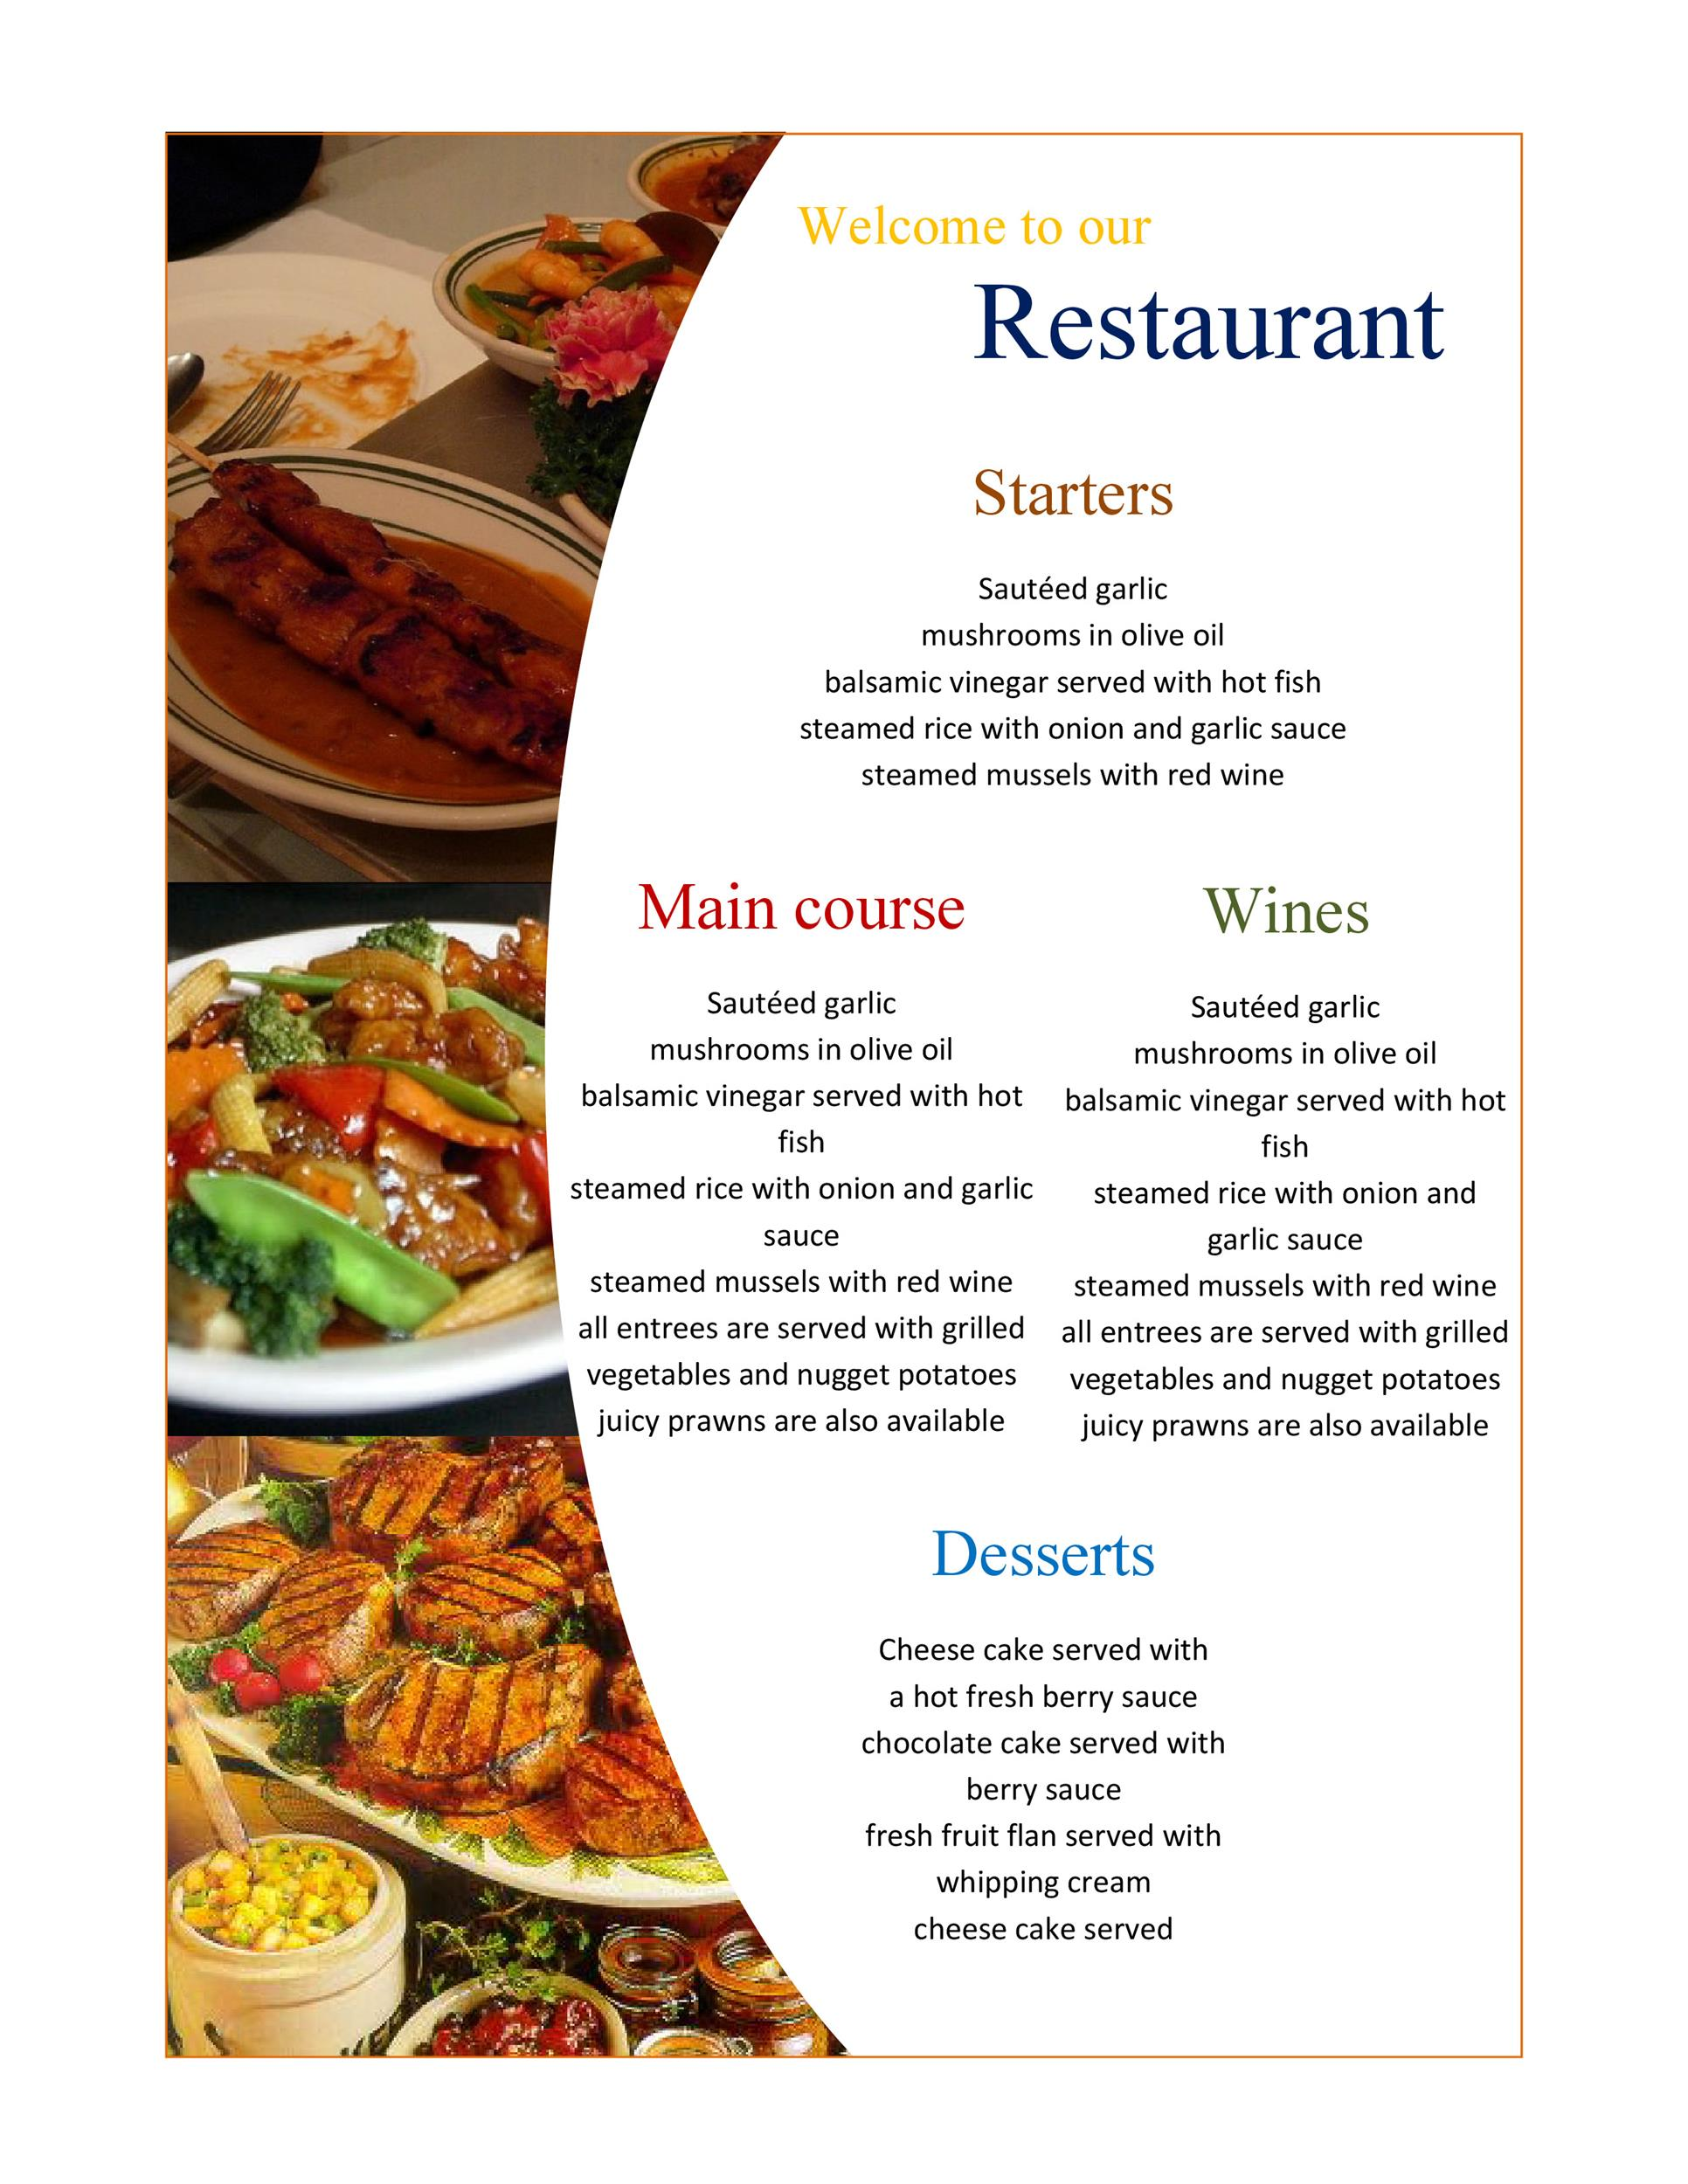 30 Restaurant Menu Templates  Designs - Template Lab